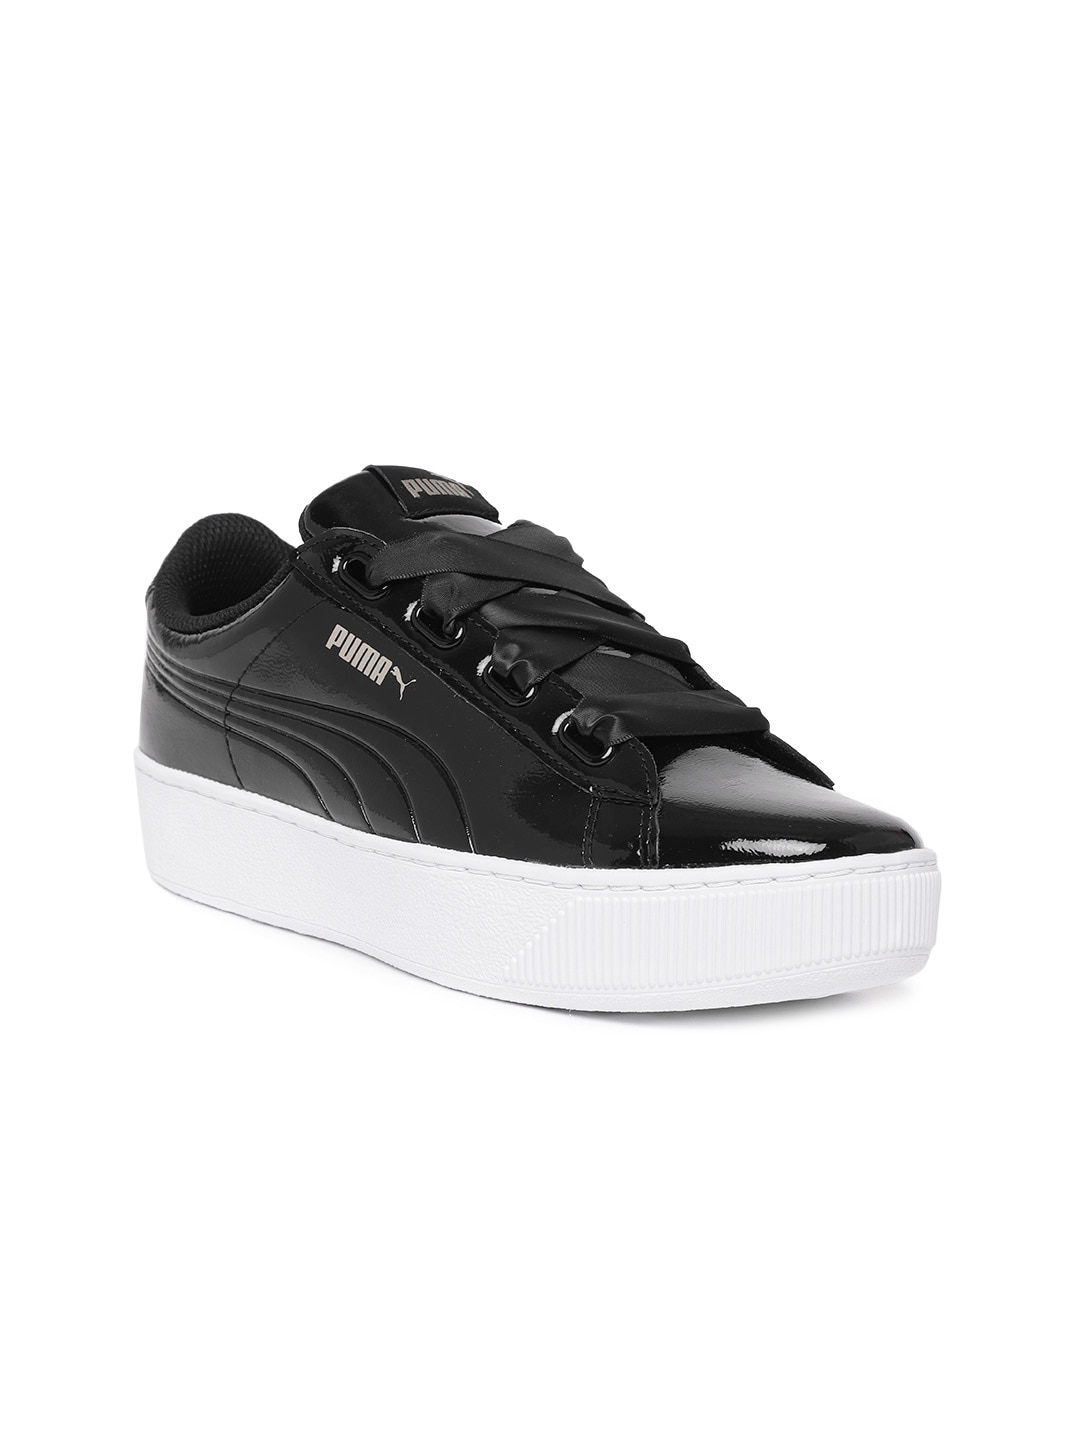 0316c1e48b Puma Shoes - Buy Puma Shoes for Men   Women Online in India